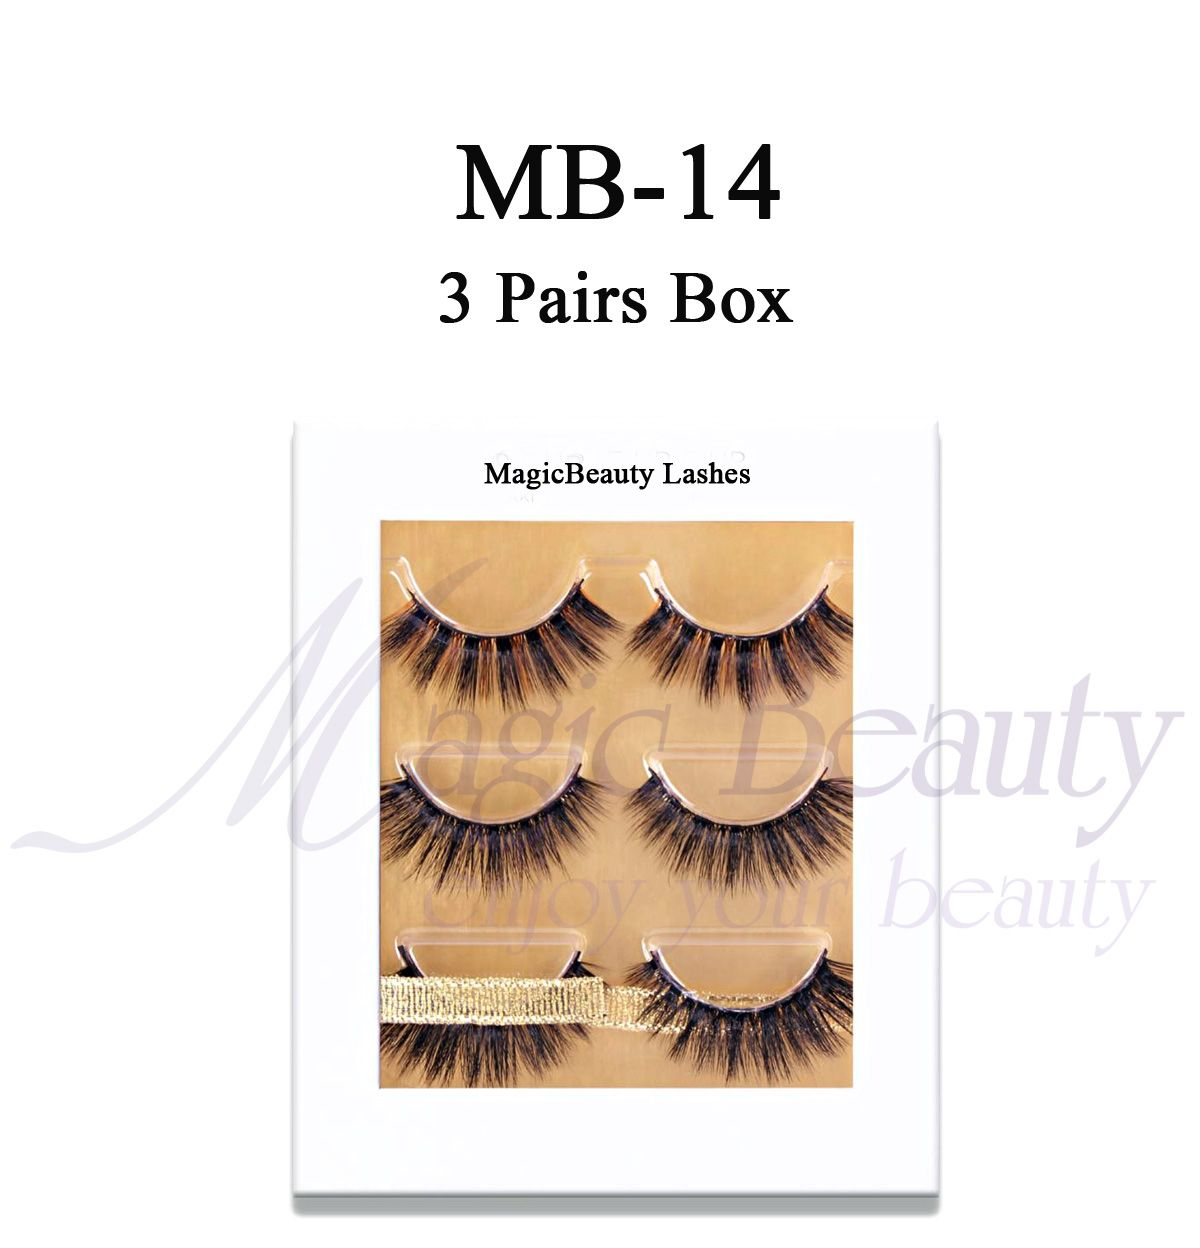 6a0f7624b85 3 pairs magnetic box wih lashes inside Custom lashes box with your own  lashes brand and color you like Email: sale01@magicbeautylashes.com INS: ...